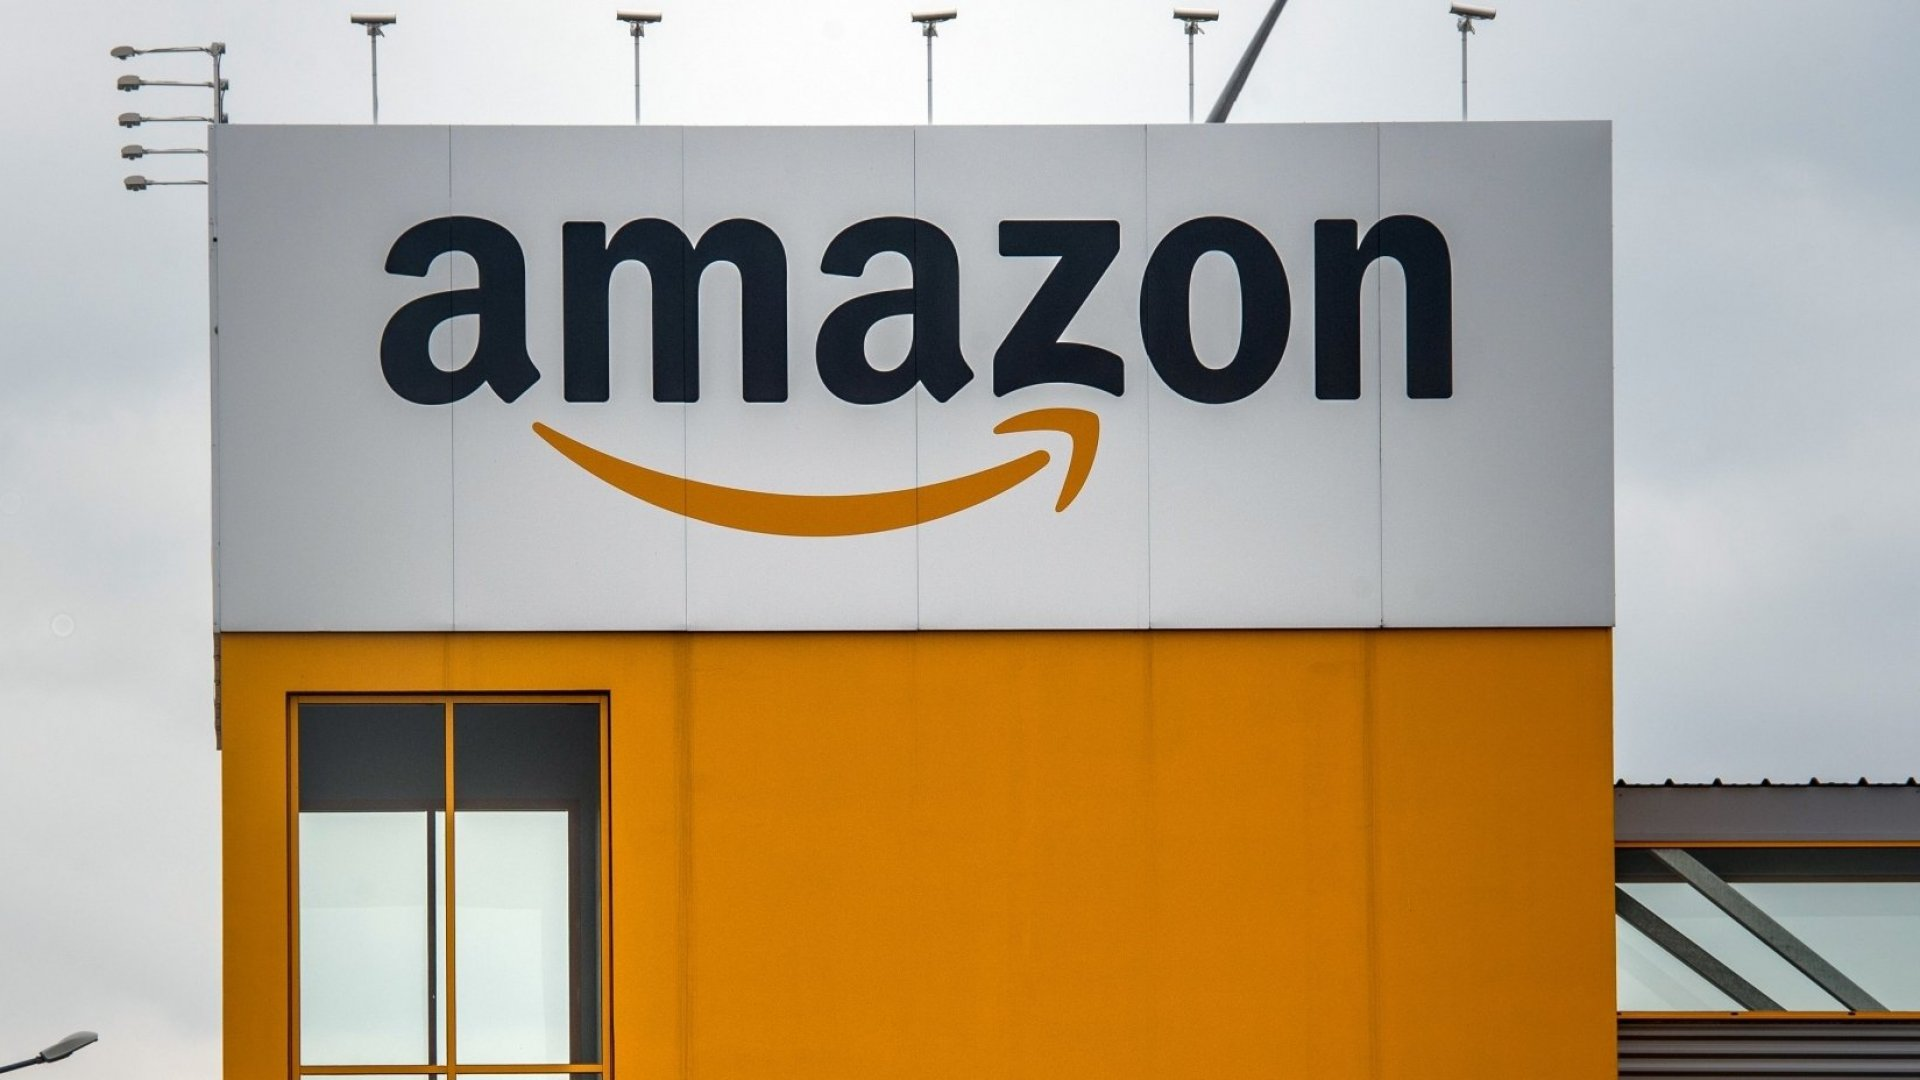 There's a Single Reason Amazon Backed Out of New York, and We All Should Have Seen It Coming